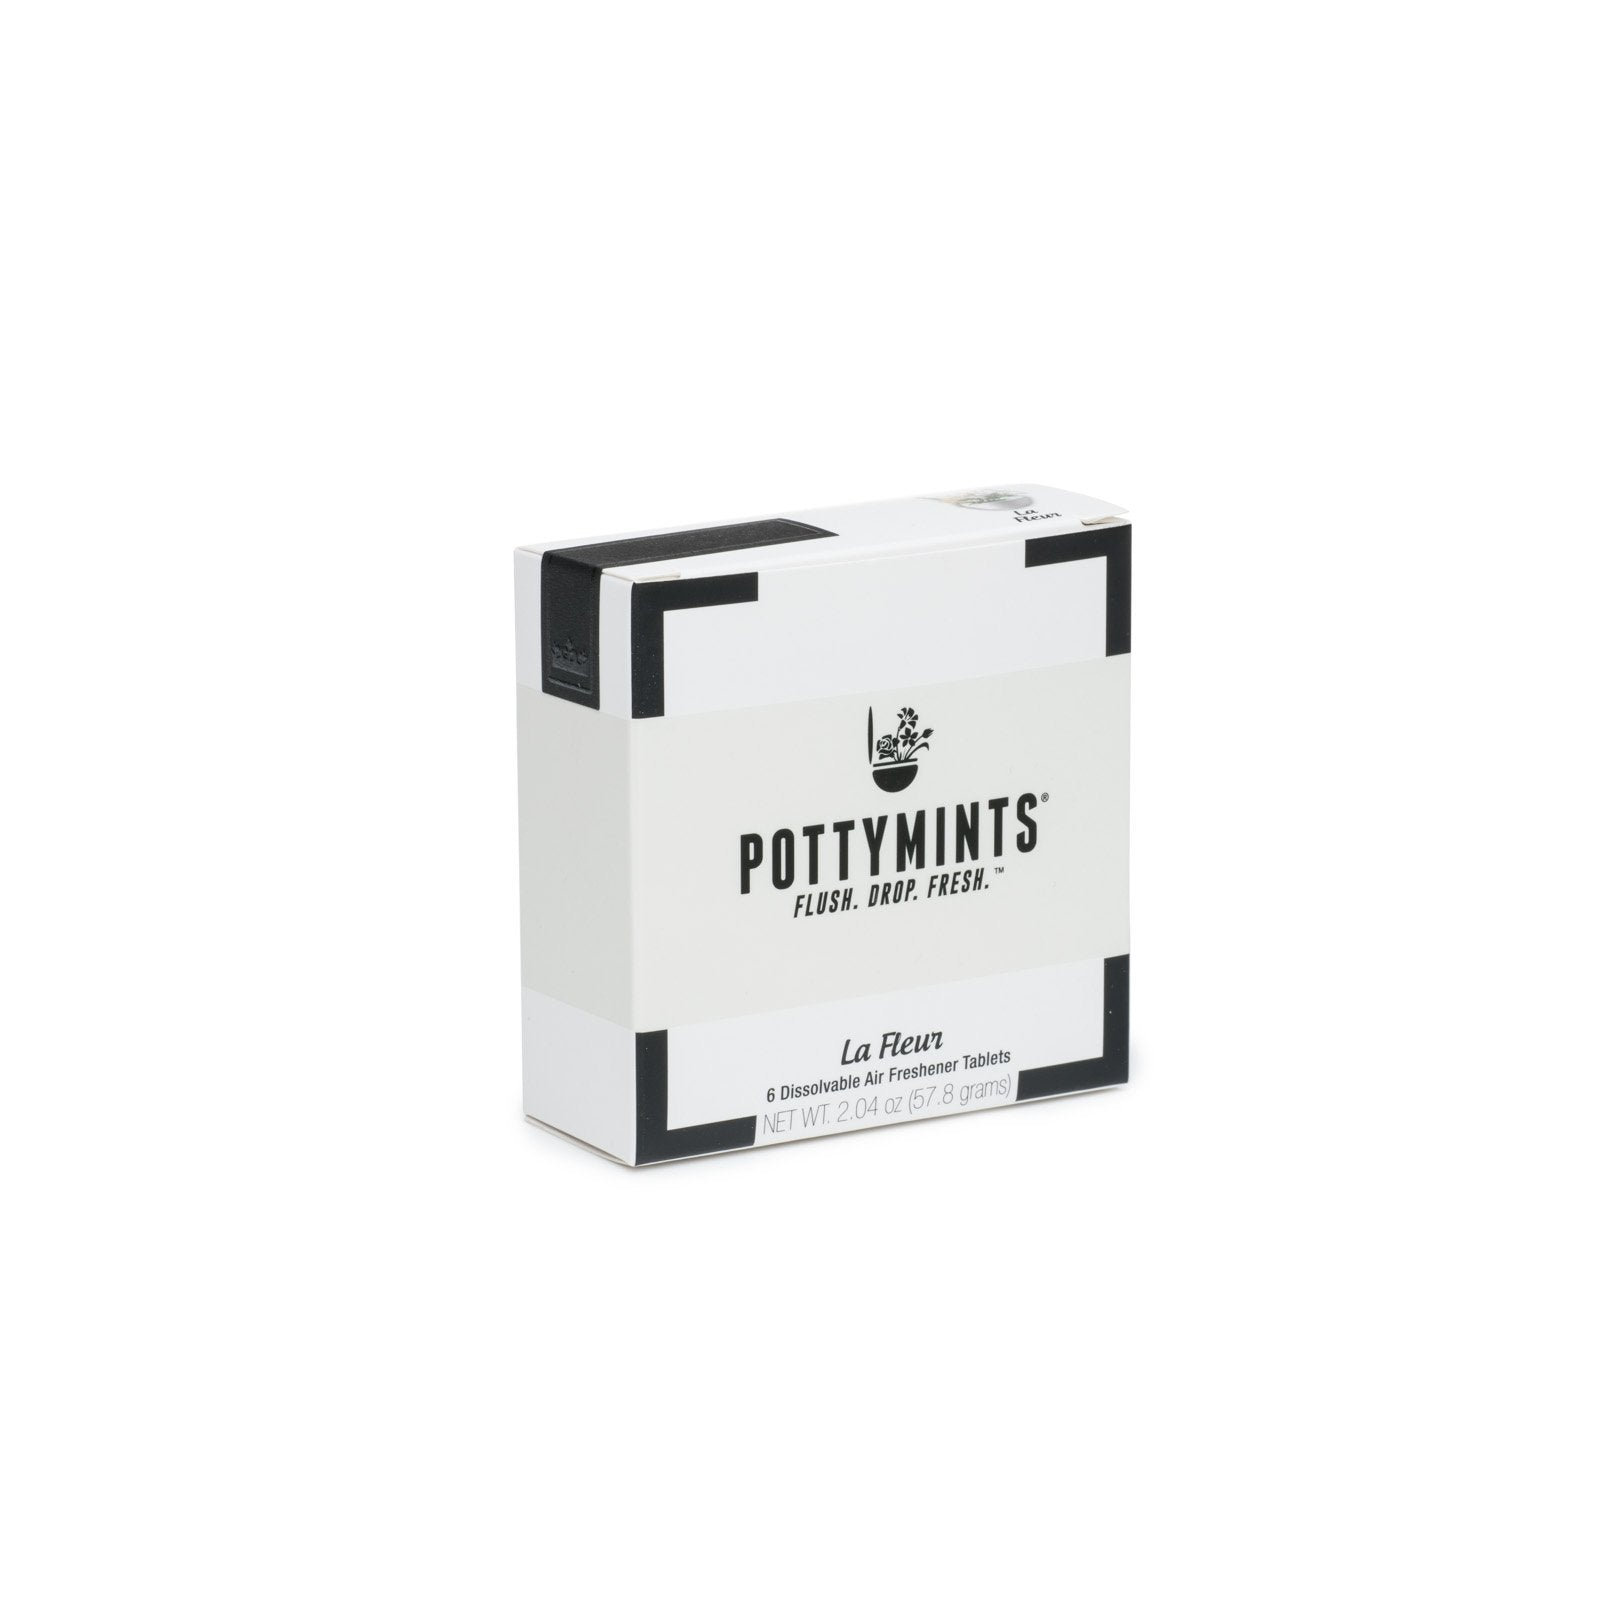 La Fleur Travel Pottymints